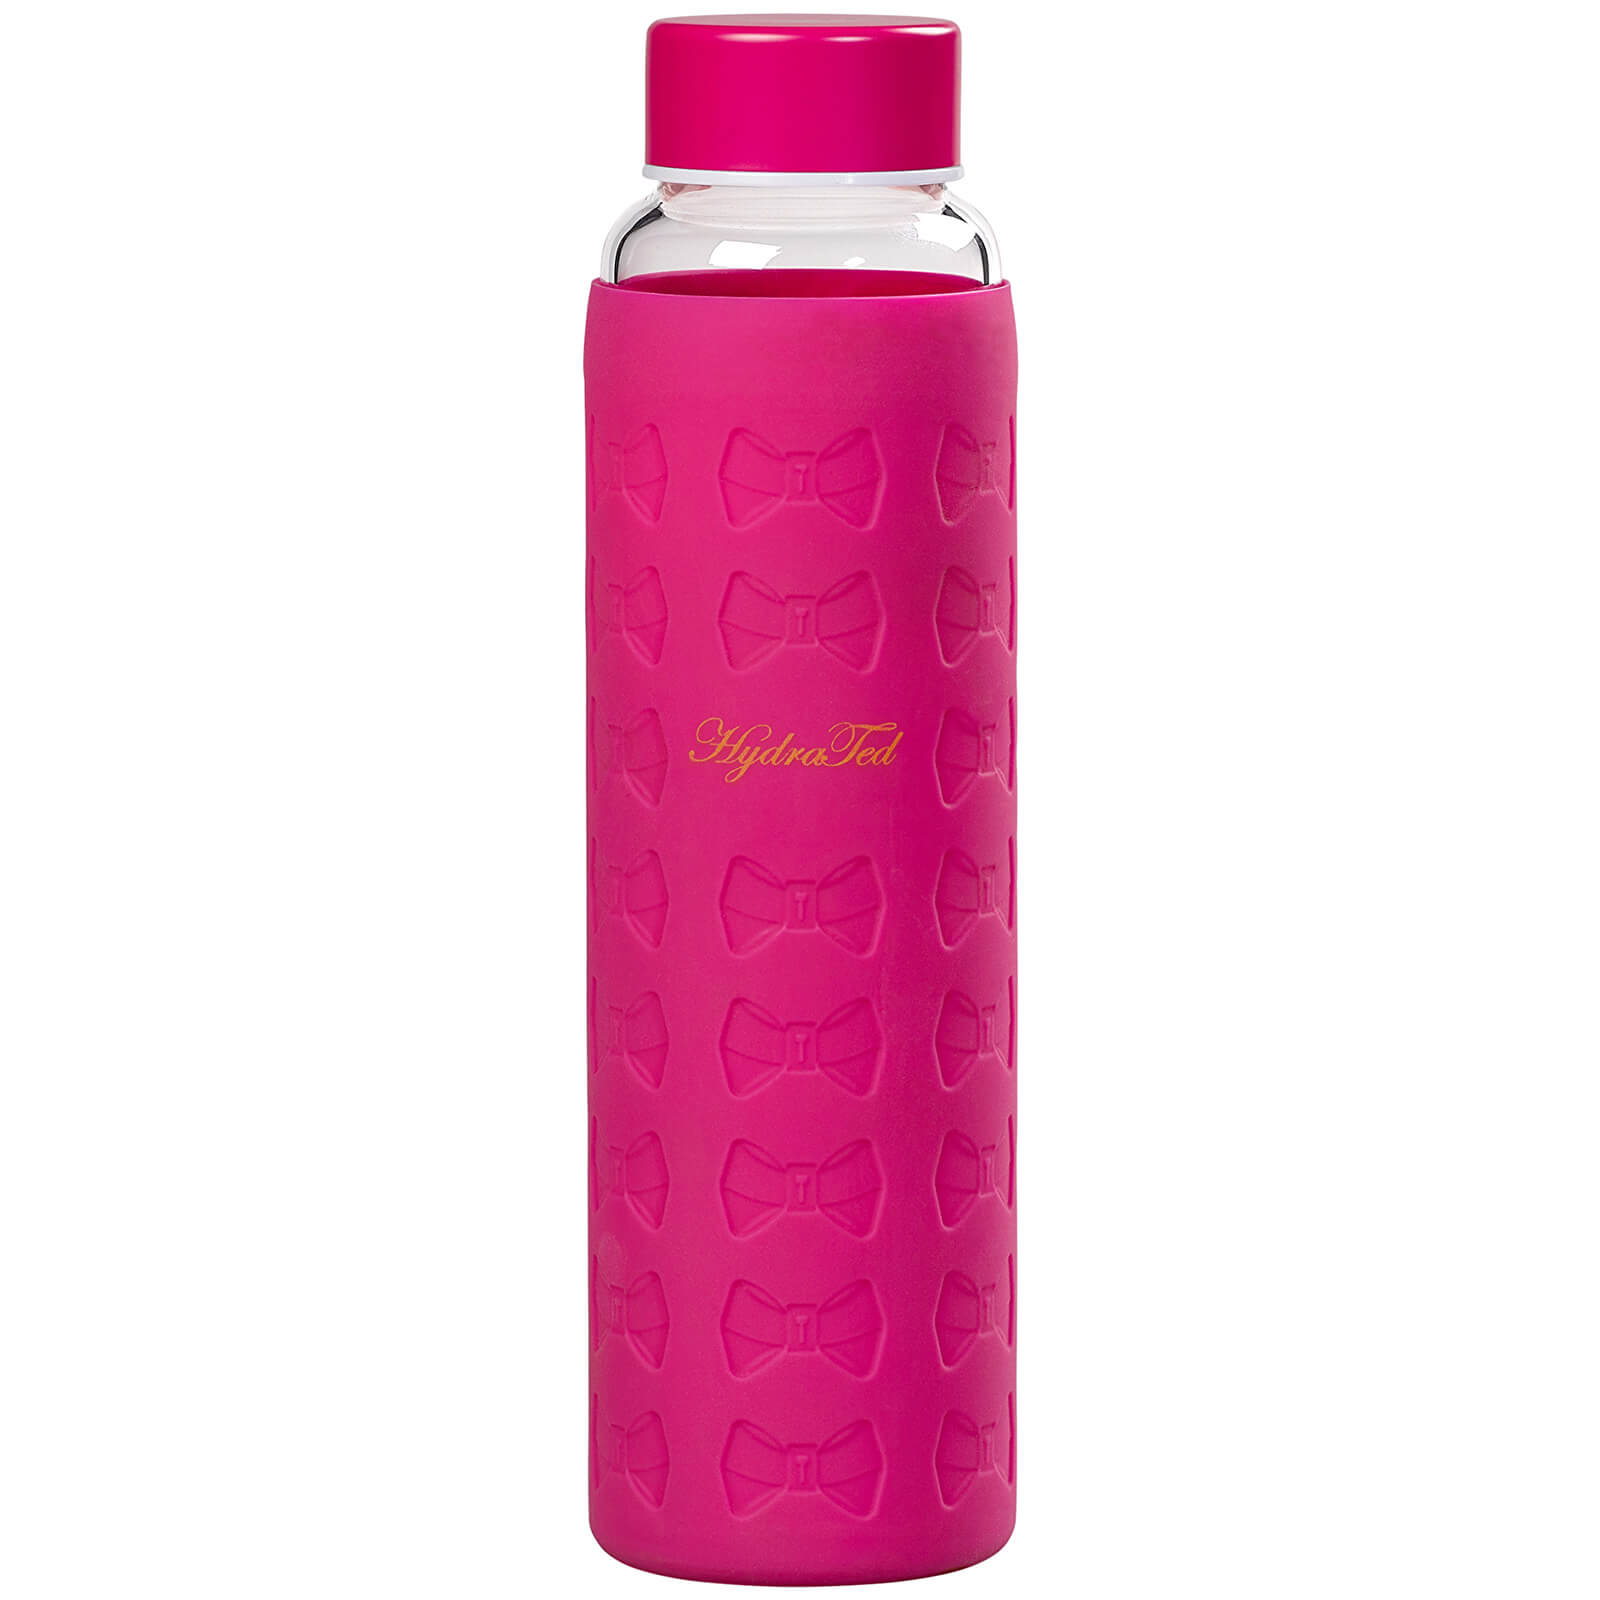 Water Bottle Australia Ted Baker Hot Pink Glass Water Bottle With Silicone Sleeve